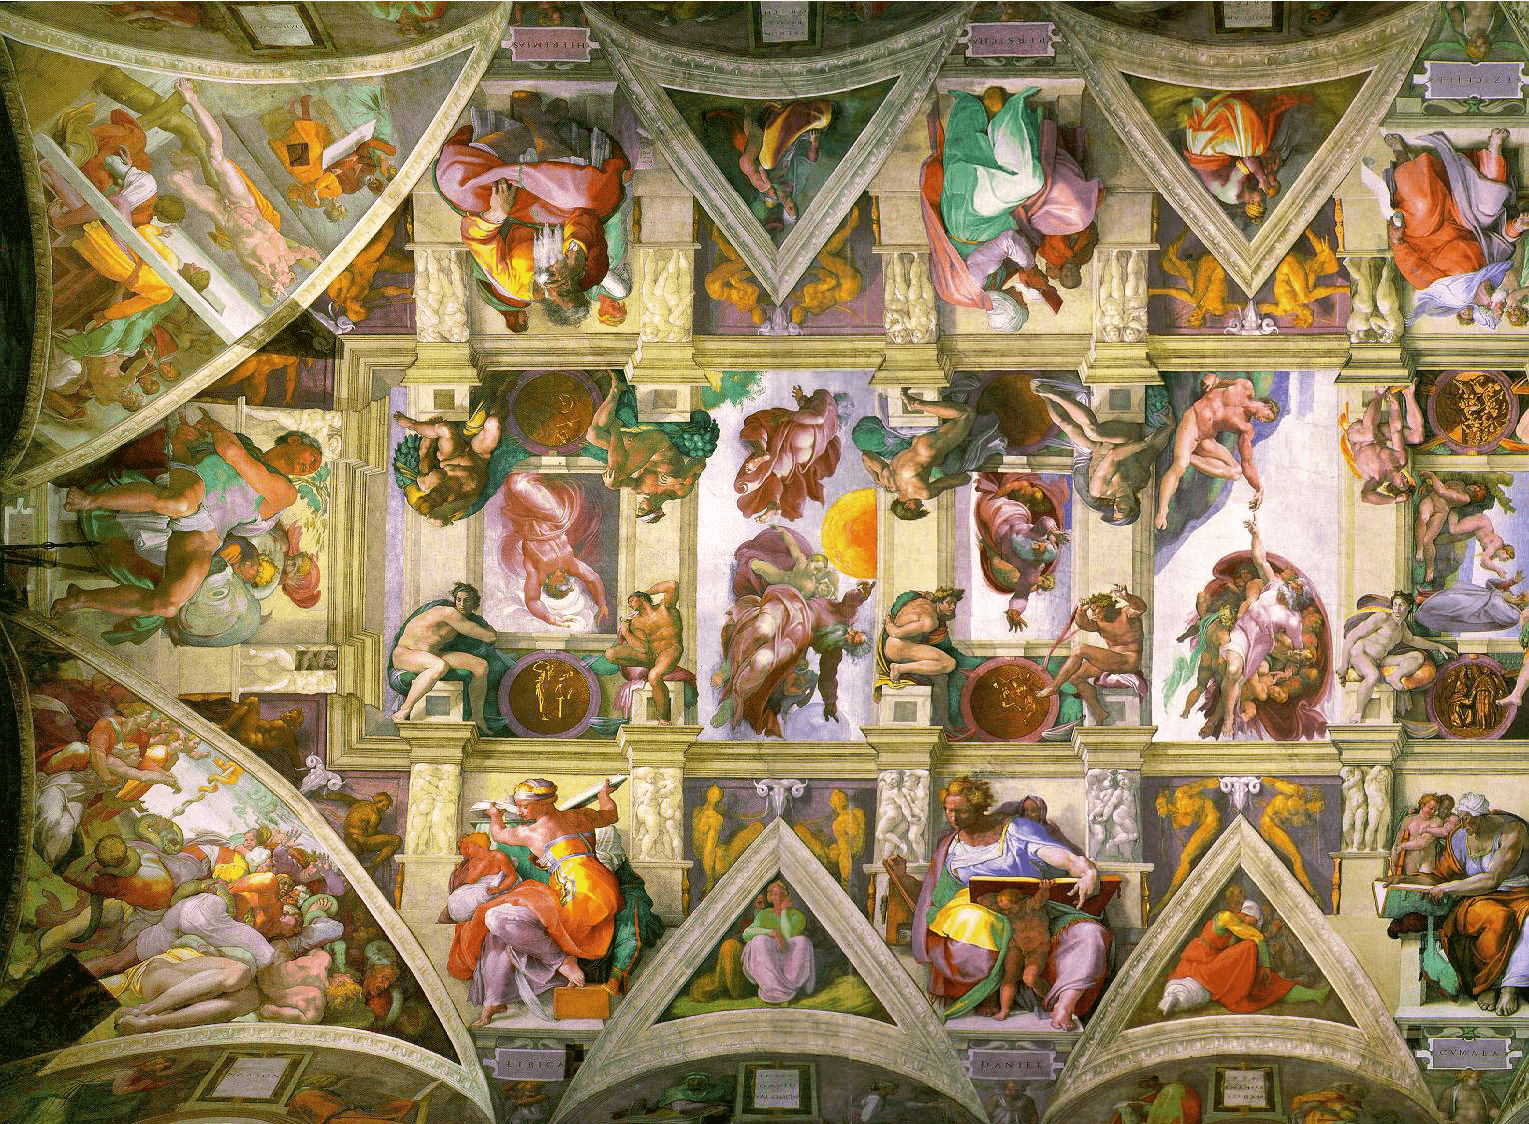 The Agony and the Ecstasy: Michelangelo's Sistine Chapel ceiling